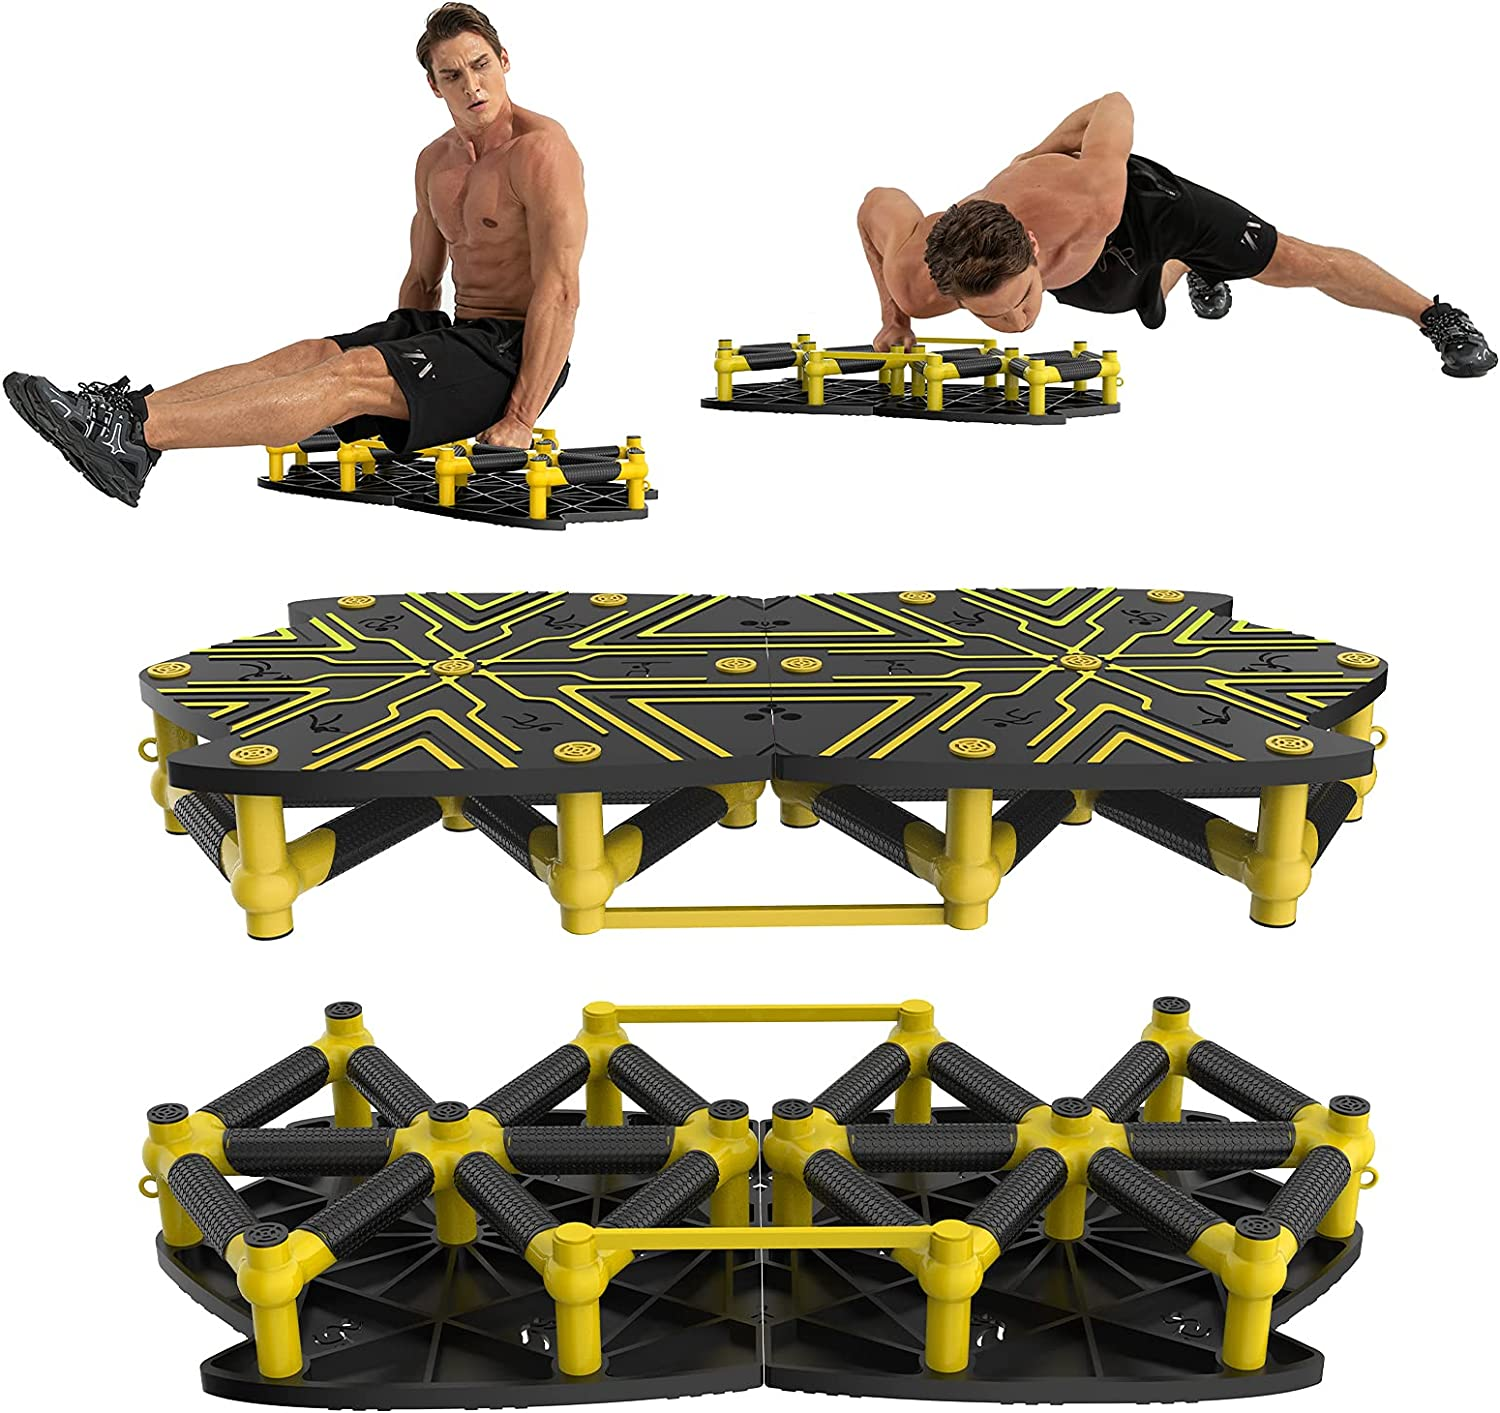 Push Up outlet Board System 10 In Portable Home Gym Super sale Equipment 1 Workout